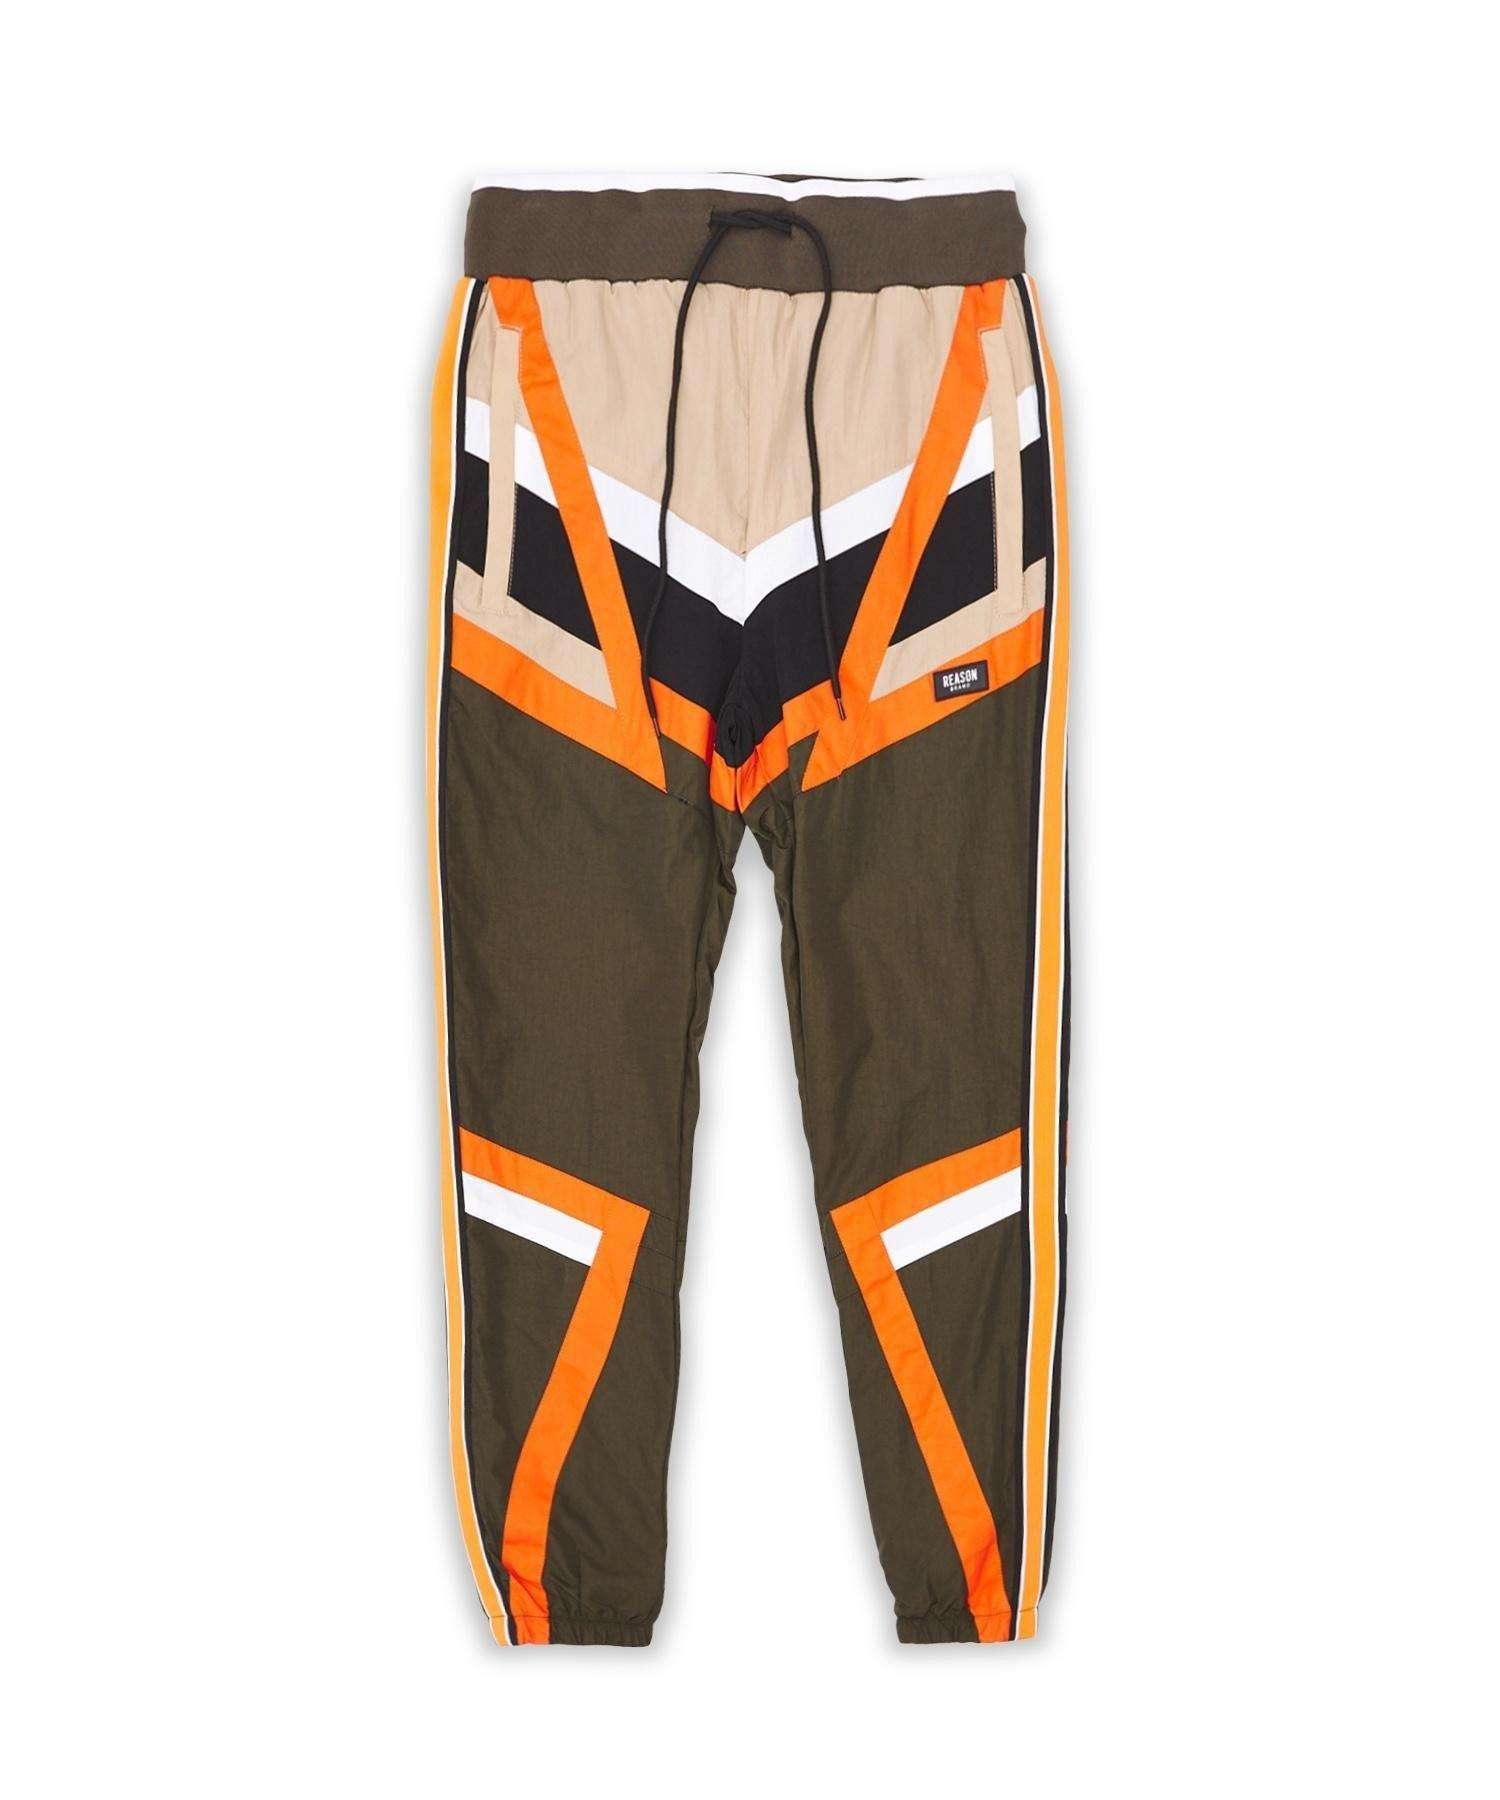 ANGLE TRACK PANT BROWN Reason Clothing